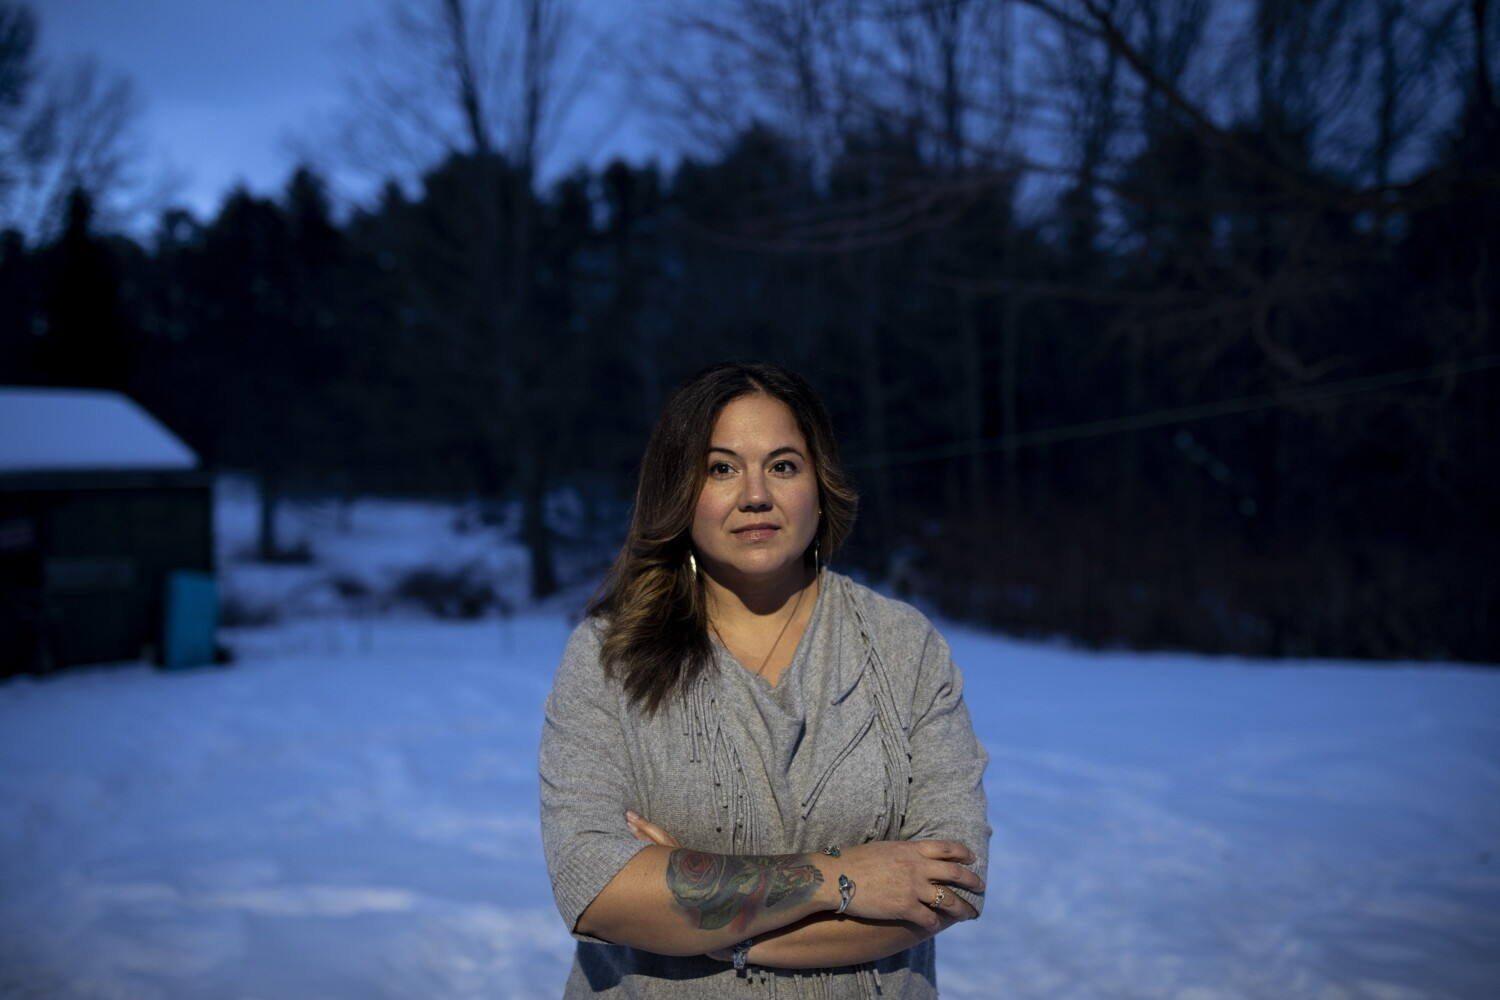 Gorham woman harassed by drone learns that not much can be done about it - CentralMaine.com